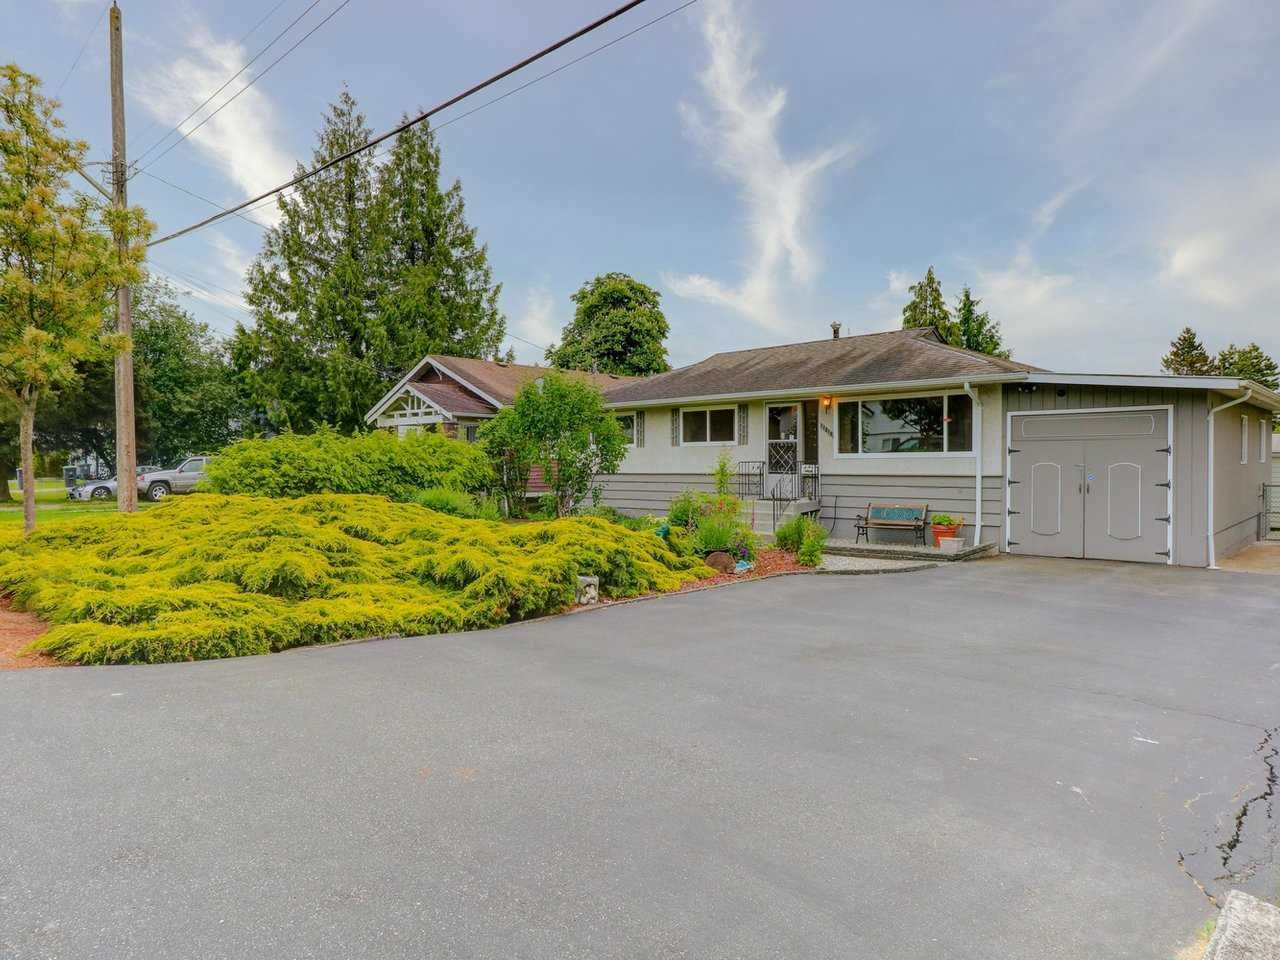 Main Photo: 17818 59A Avenue in Surrey: Cloverdale BC House for sale (Cloverdale)  : MLS®# R2563706